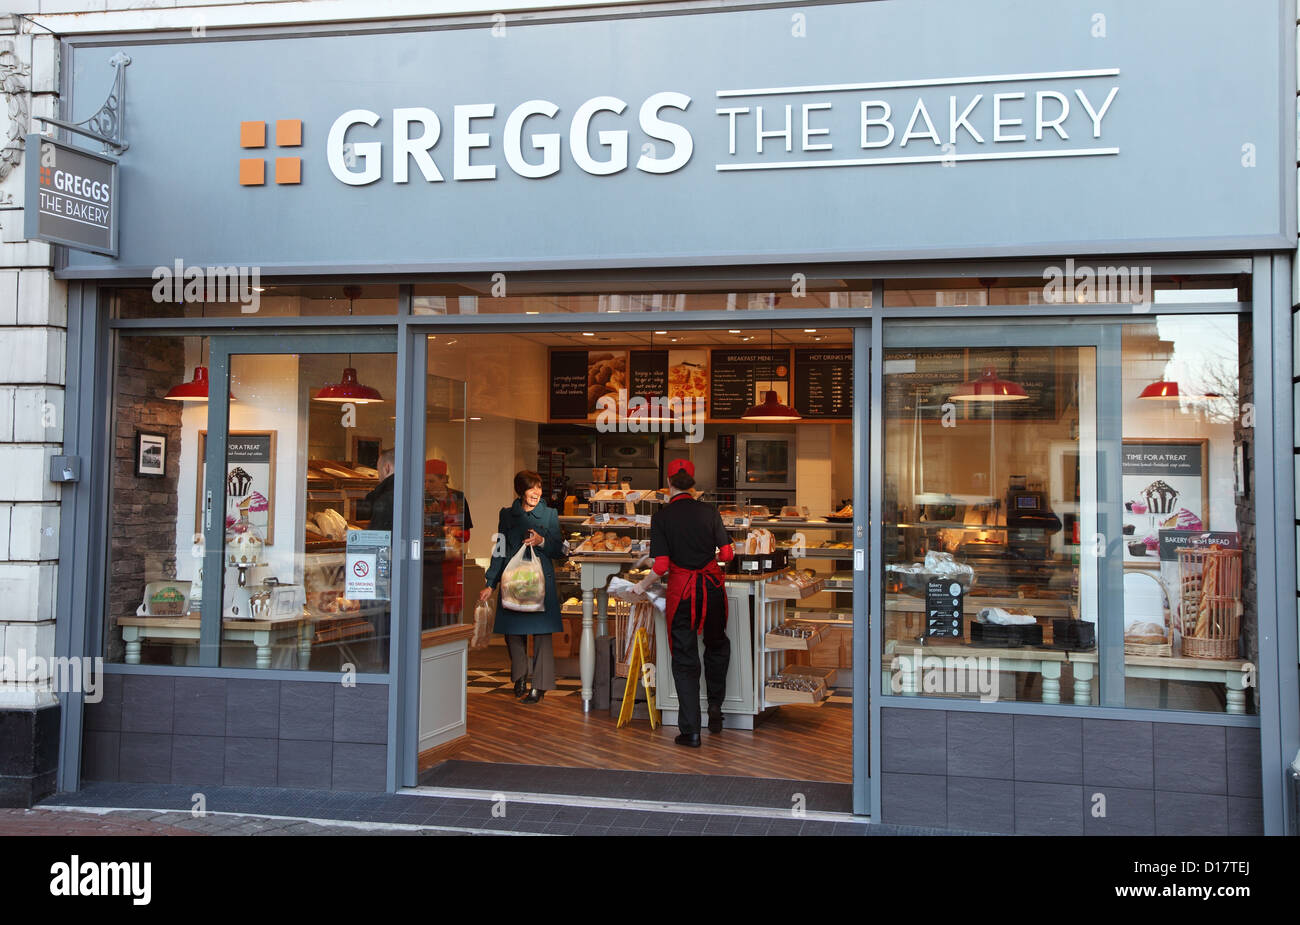 Greggs Bakery Stock Photos Amp Greggs Bakery Stock Images